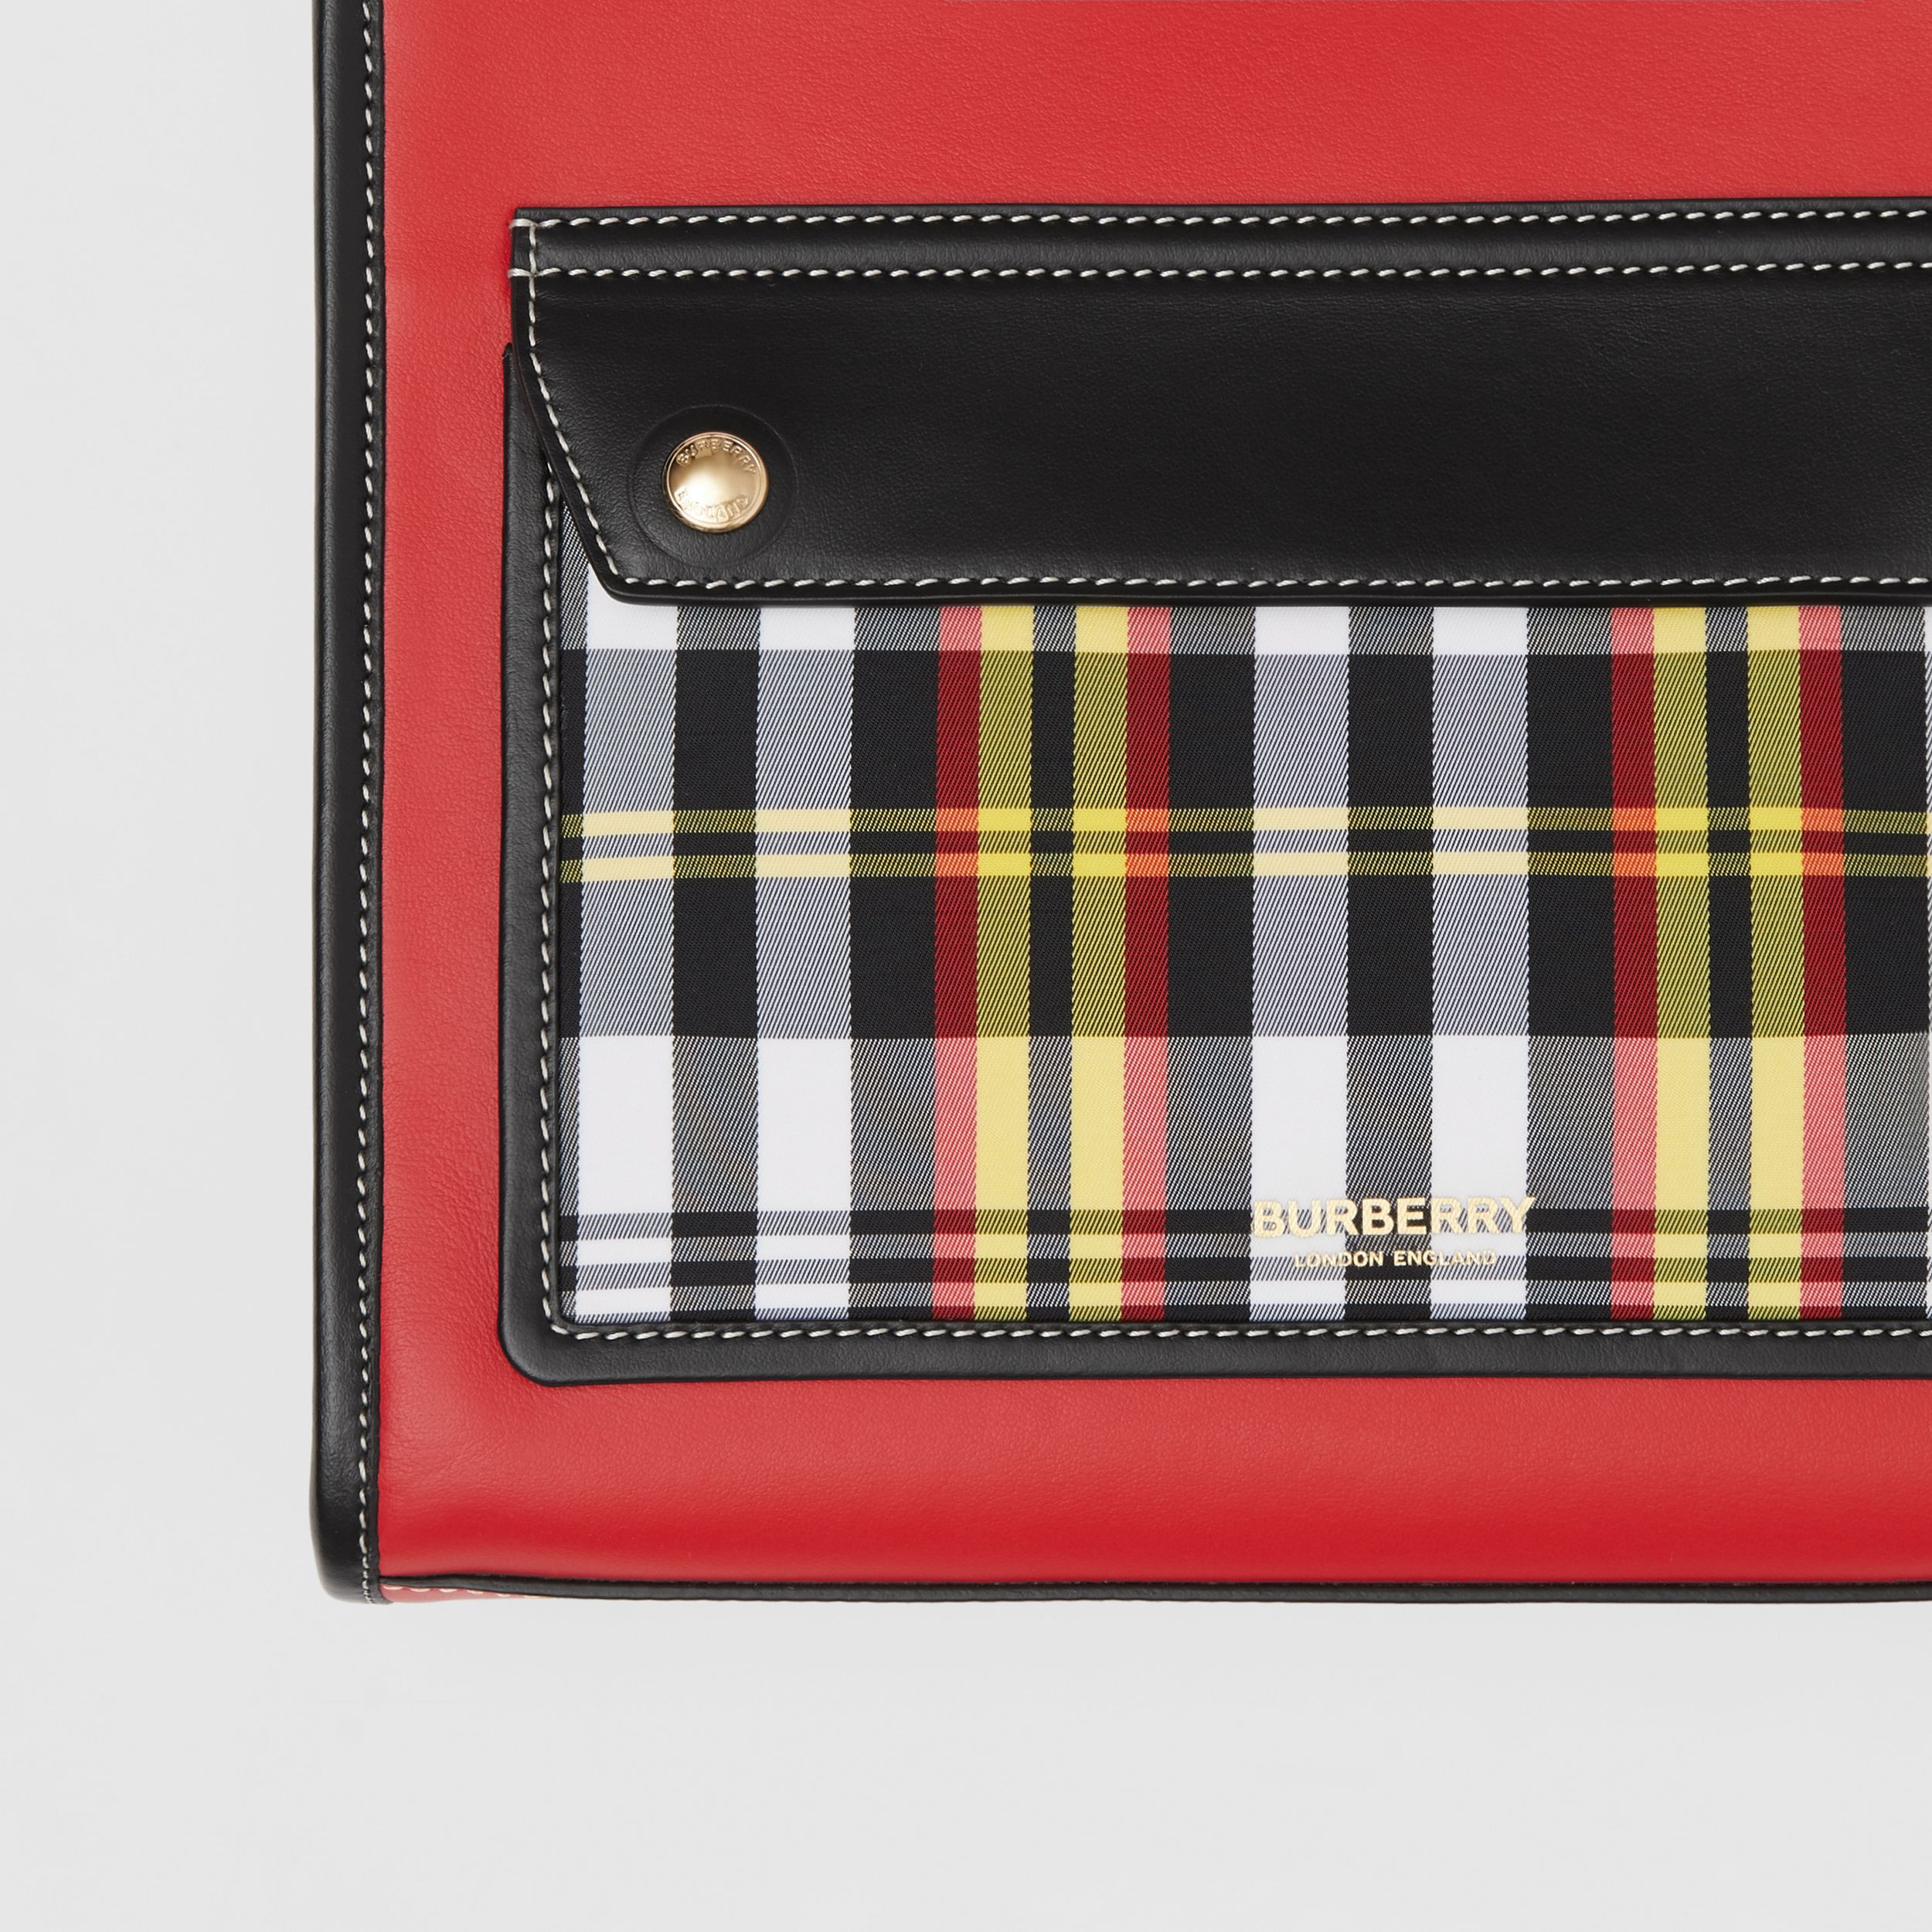 Mini Two-tone Leather and Check Pocket Bag in Bright Red - Women | Burberry - 2